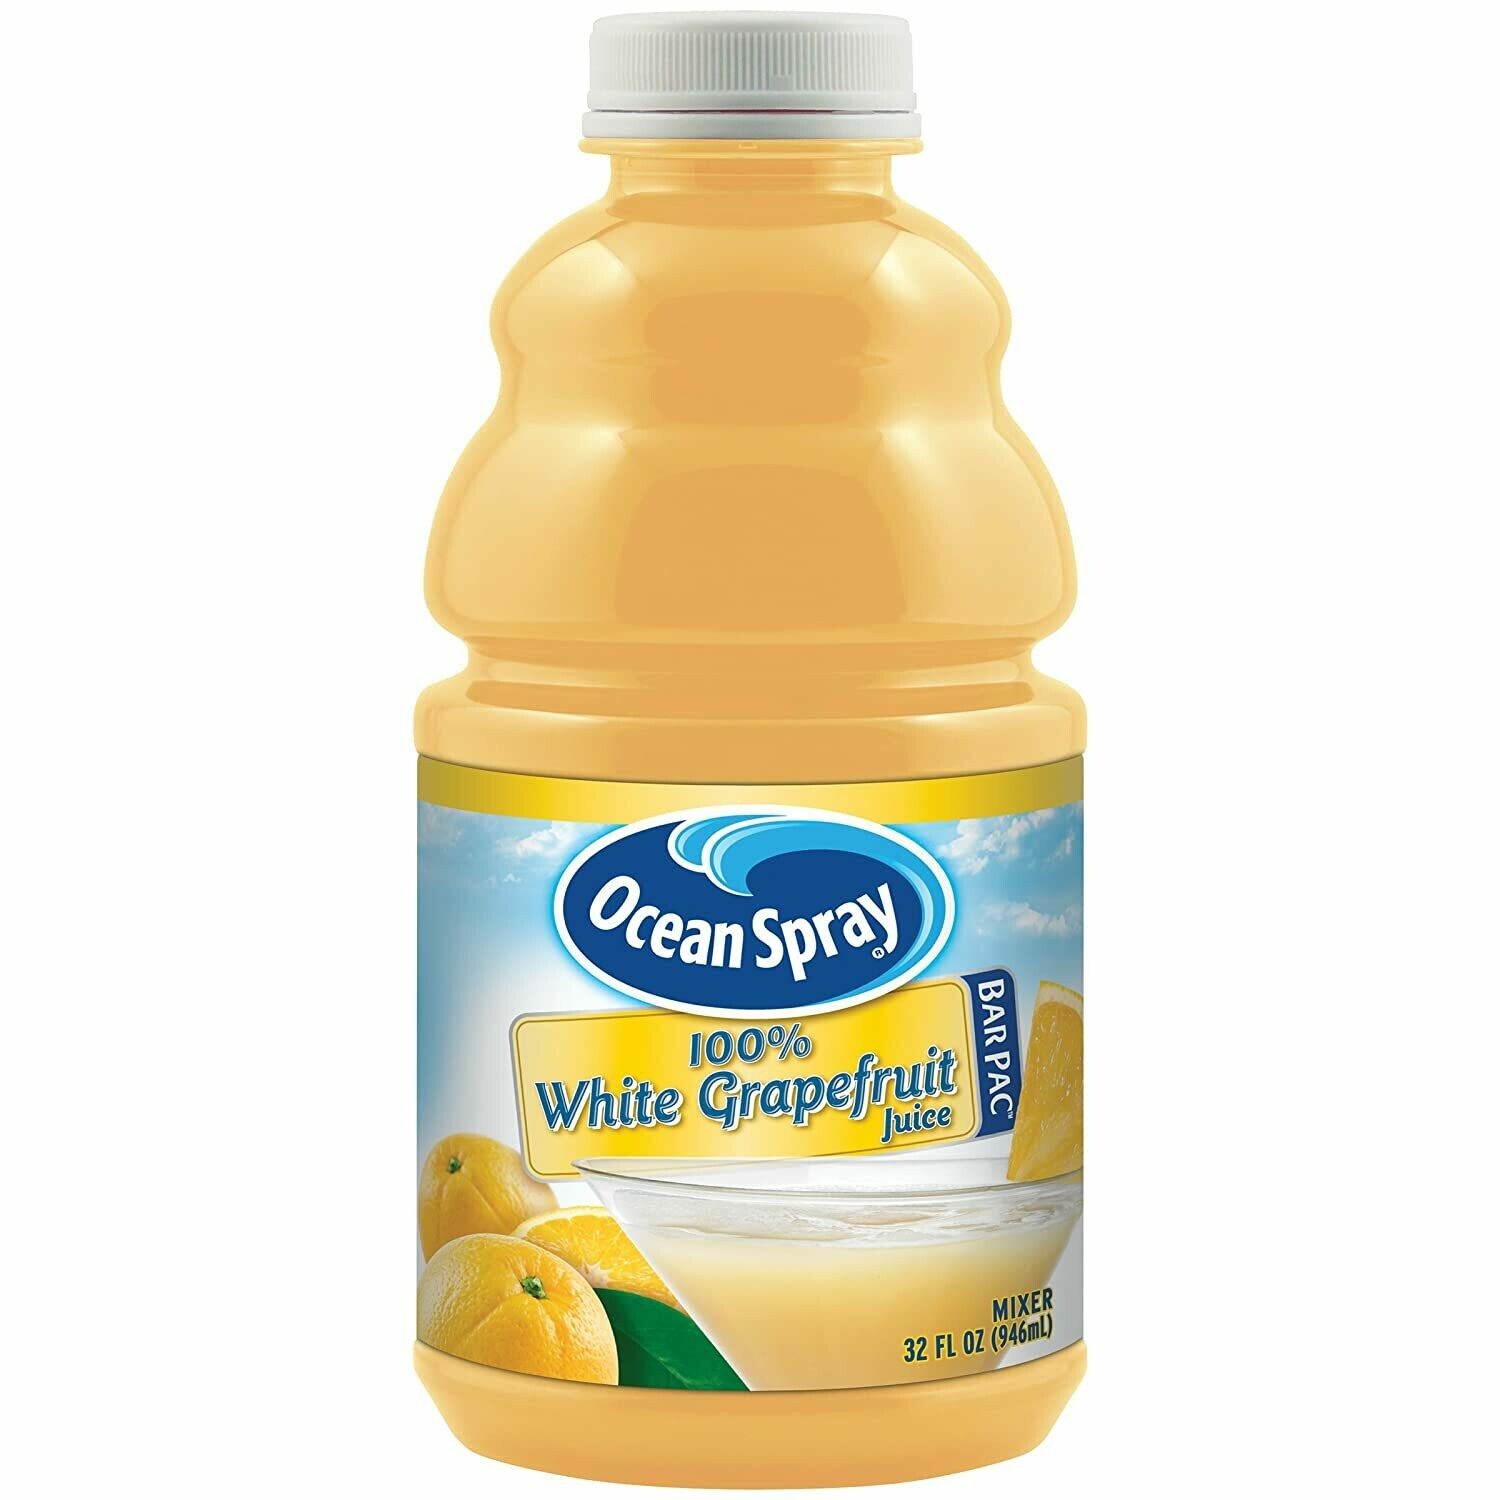 * Ocean Spray White Grapefruit Juice 32 Ounces Bottle